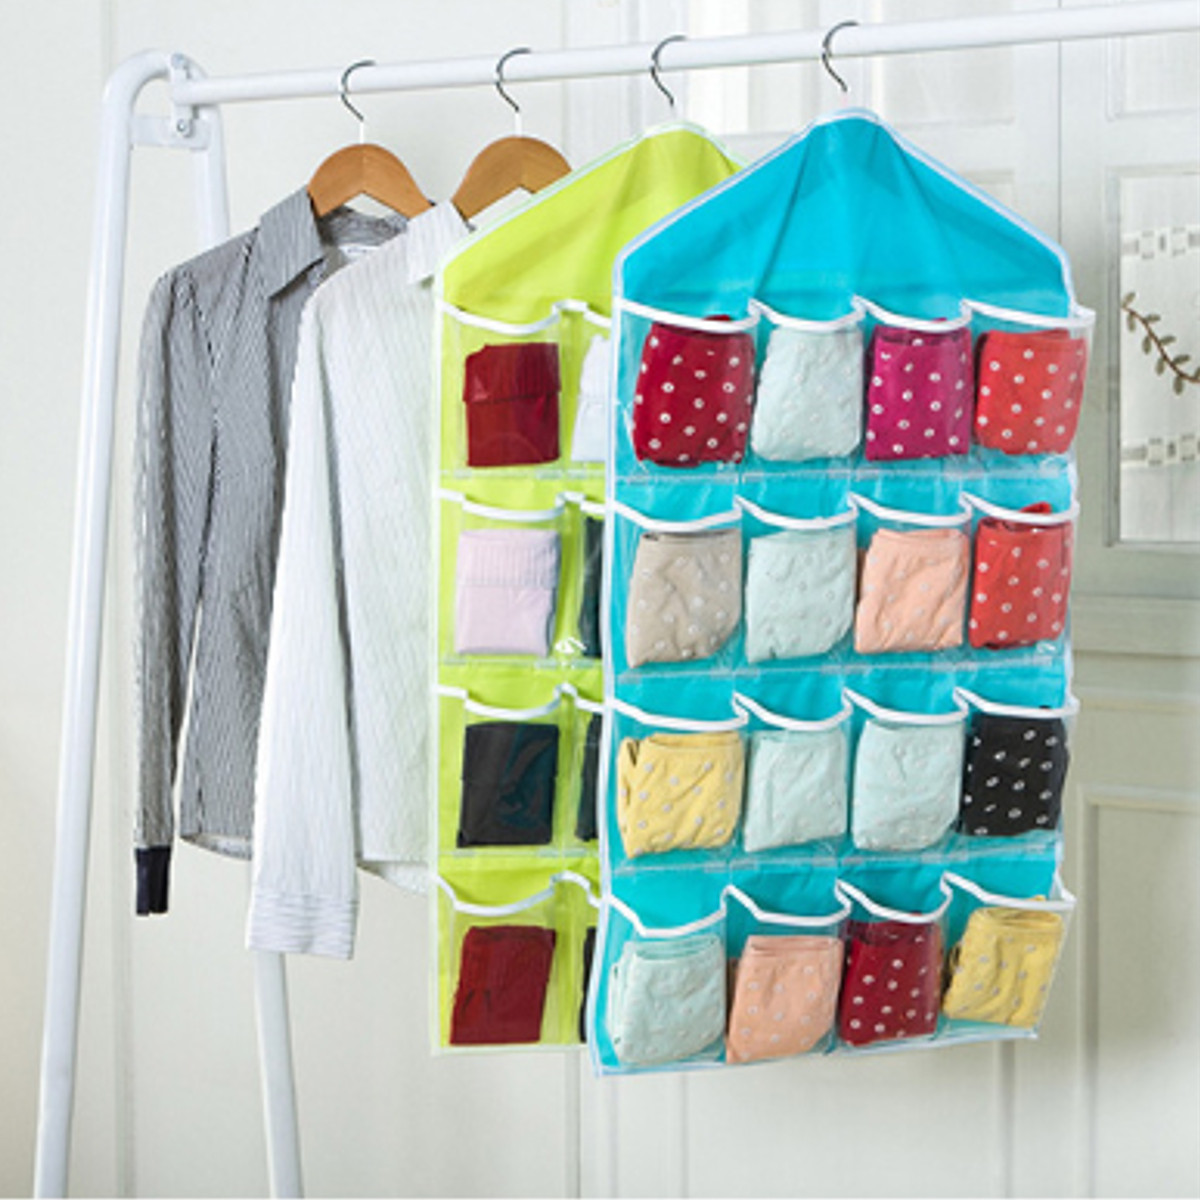 Exceptionnel 16 Pockets Home Clear Over Door Hanging Bag Space Saving Shoe Organizer  Rack Underwear Socks Bra